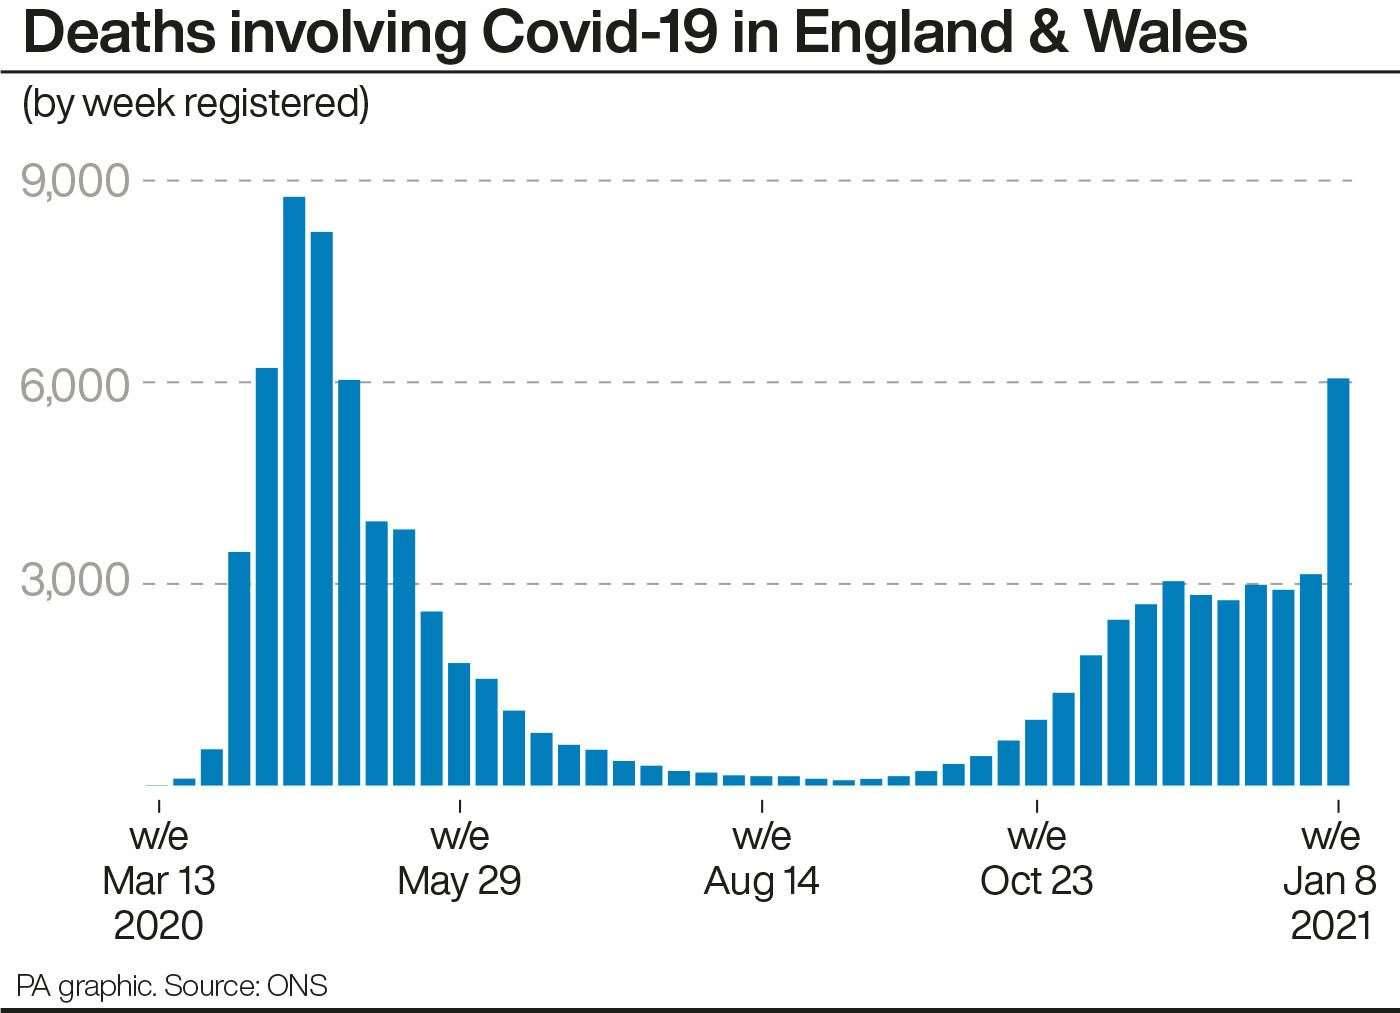 Deaths involving Covid-19 in England & Wales.